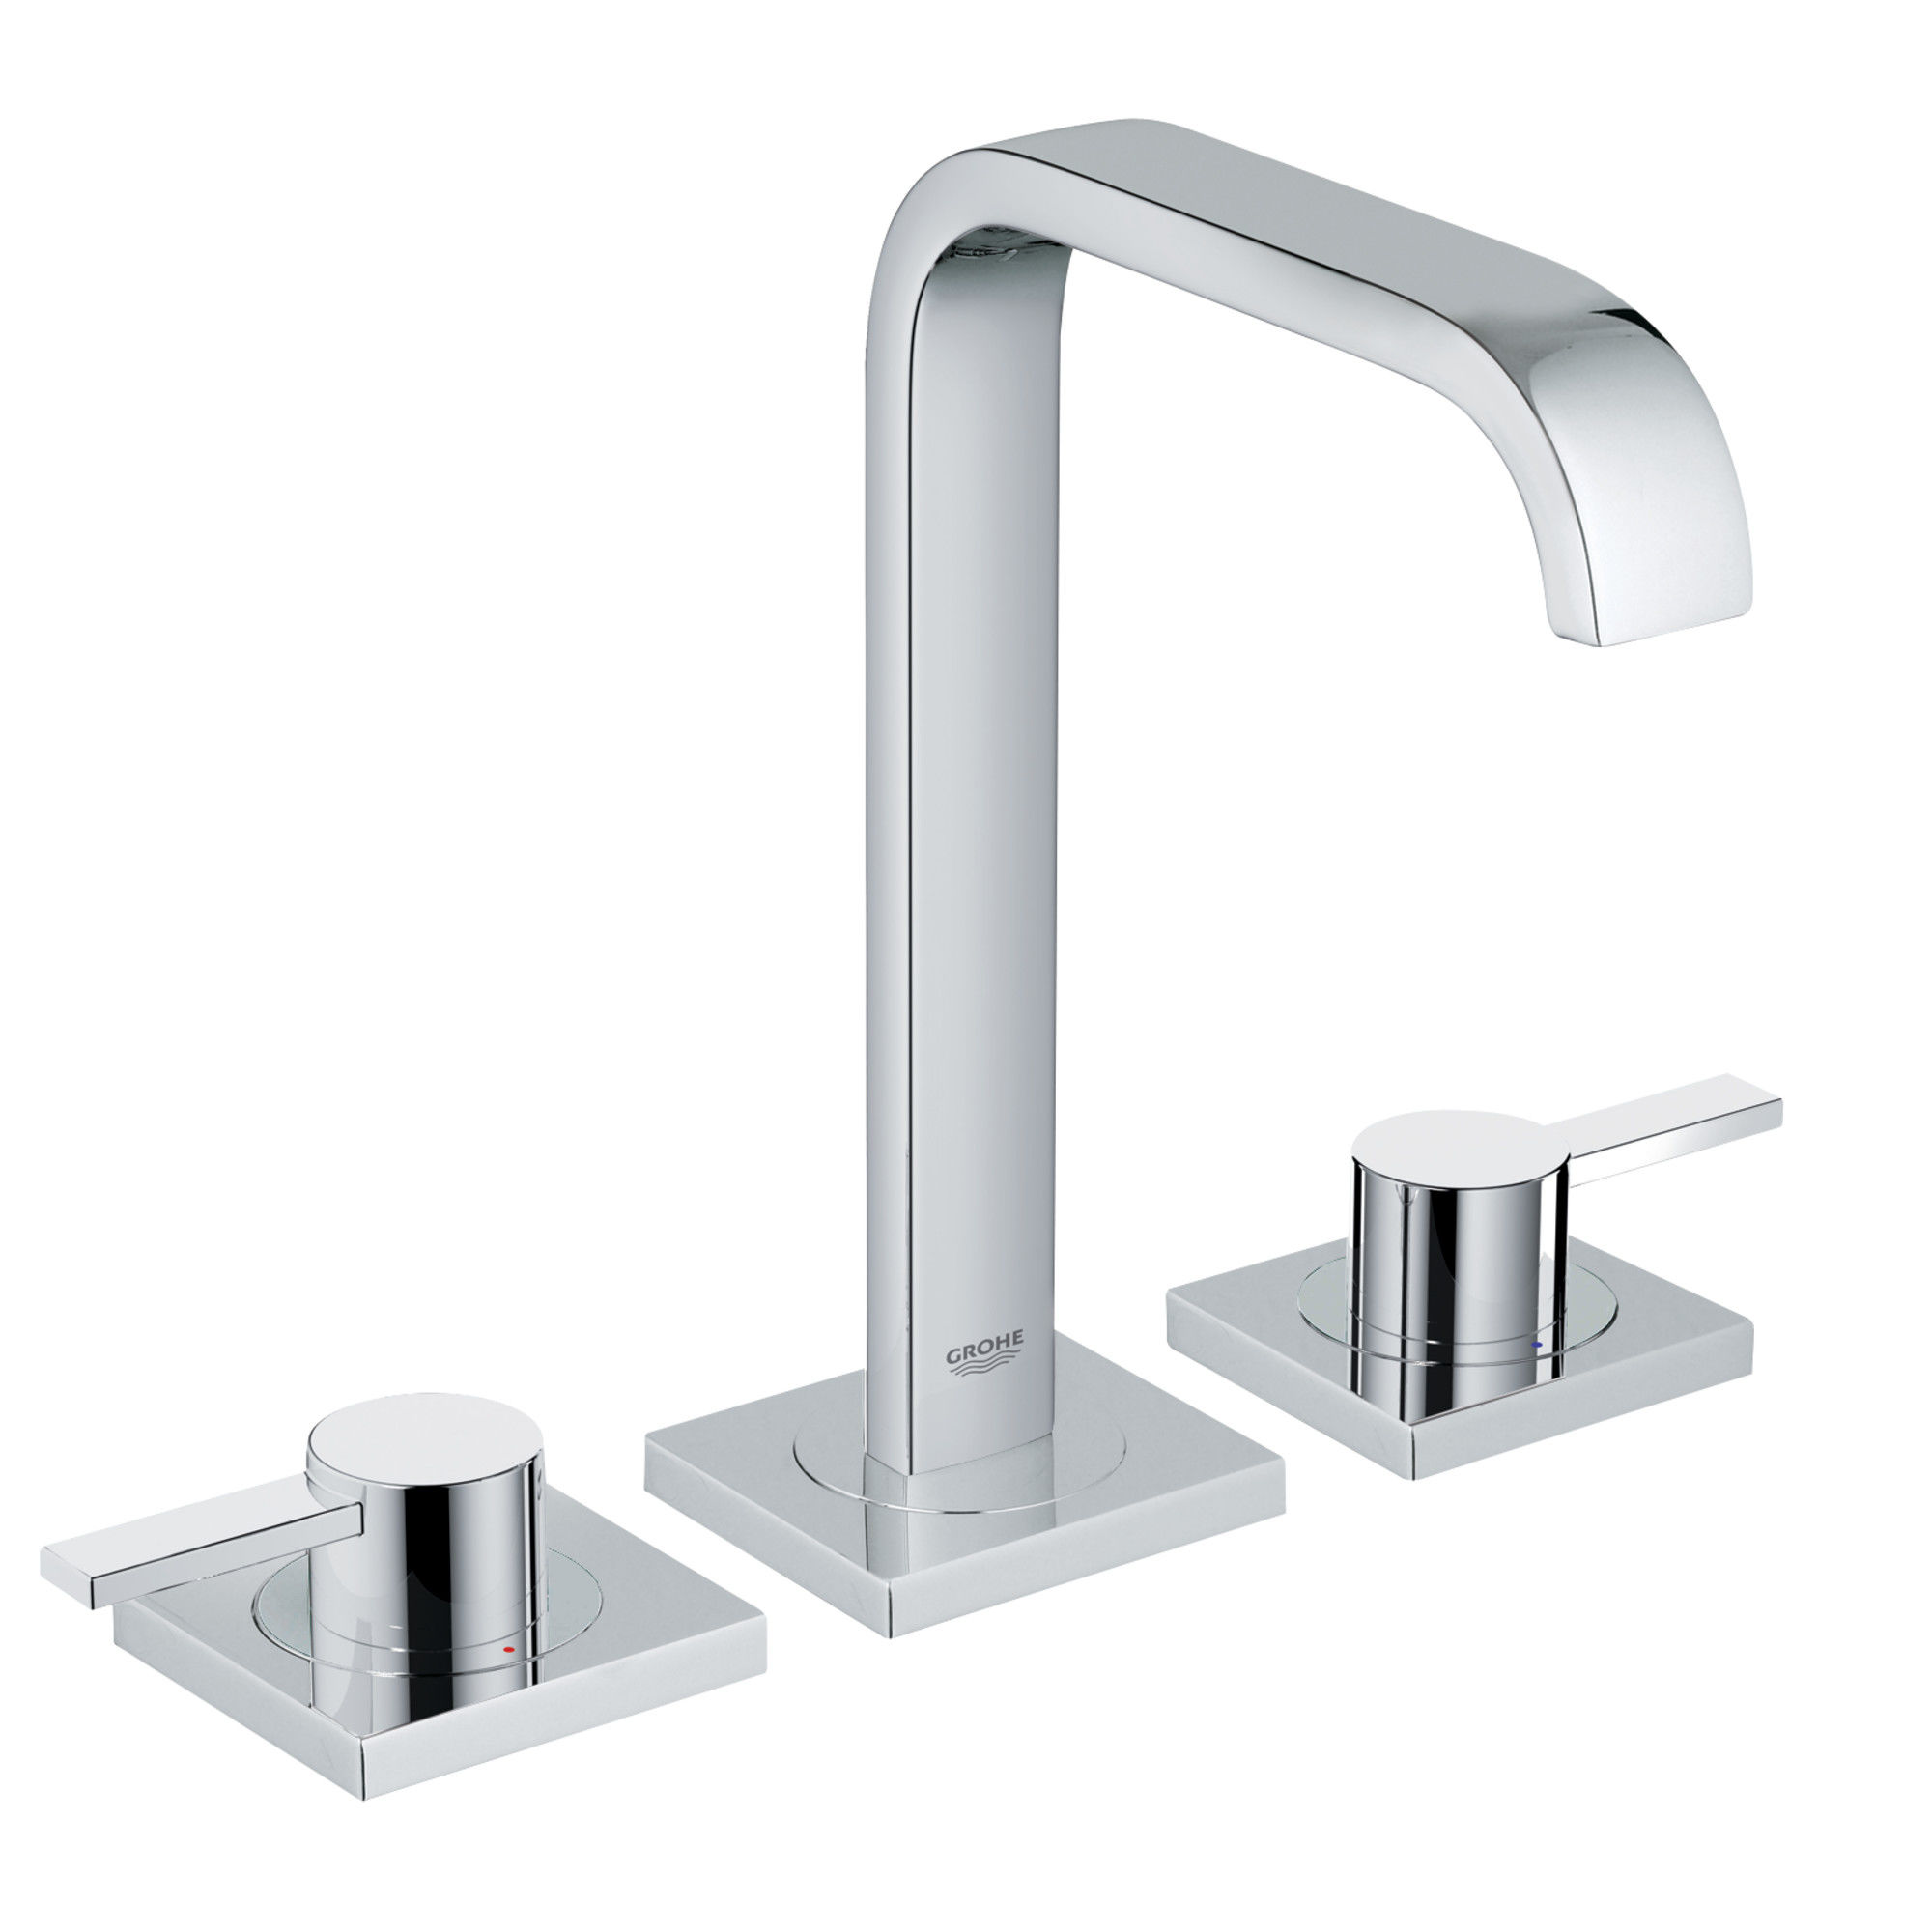 Grohe 2019100A Starlight Chrome Allure 1.2 GPM Widespread Bathroom ...